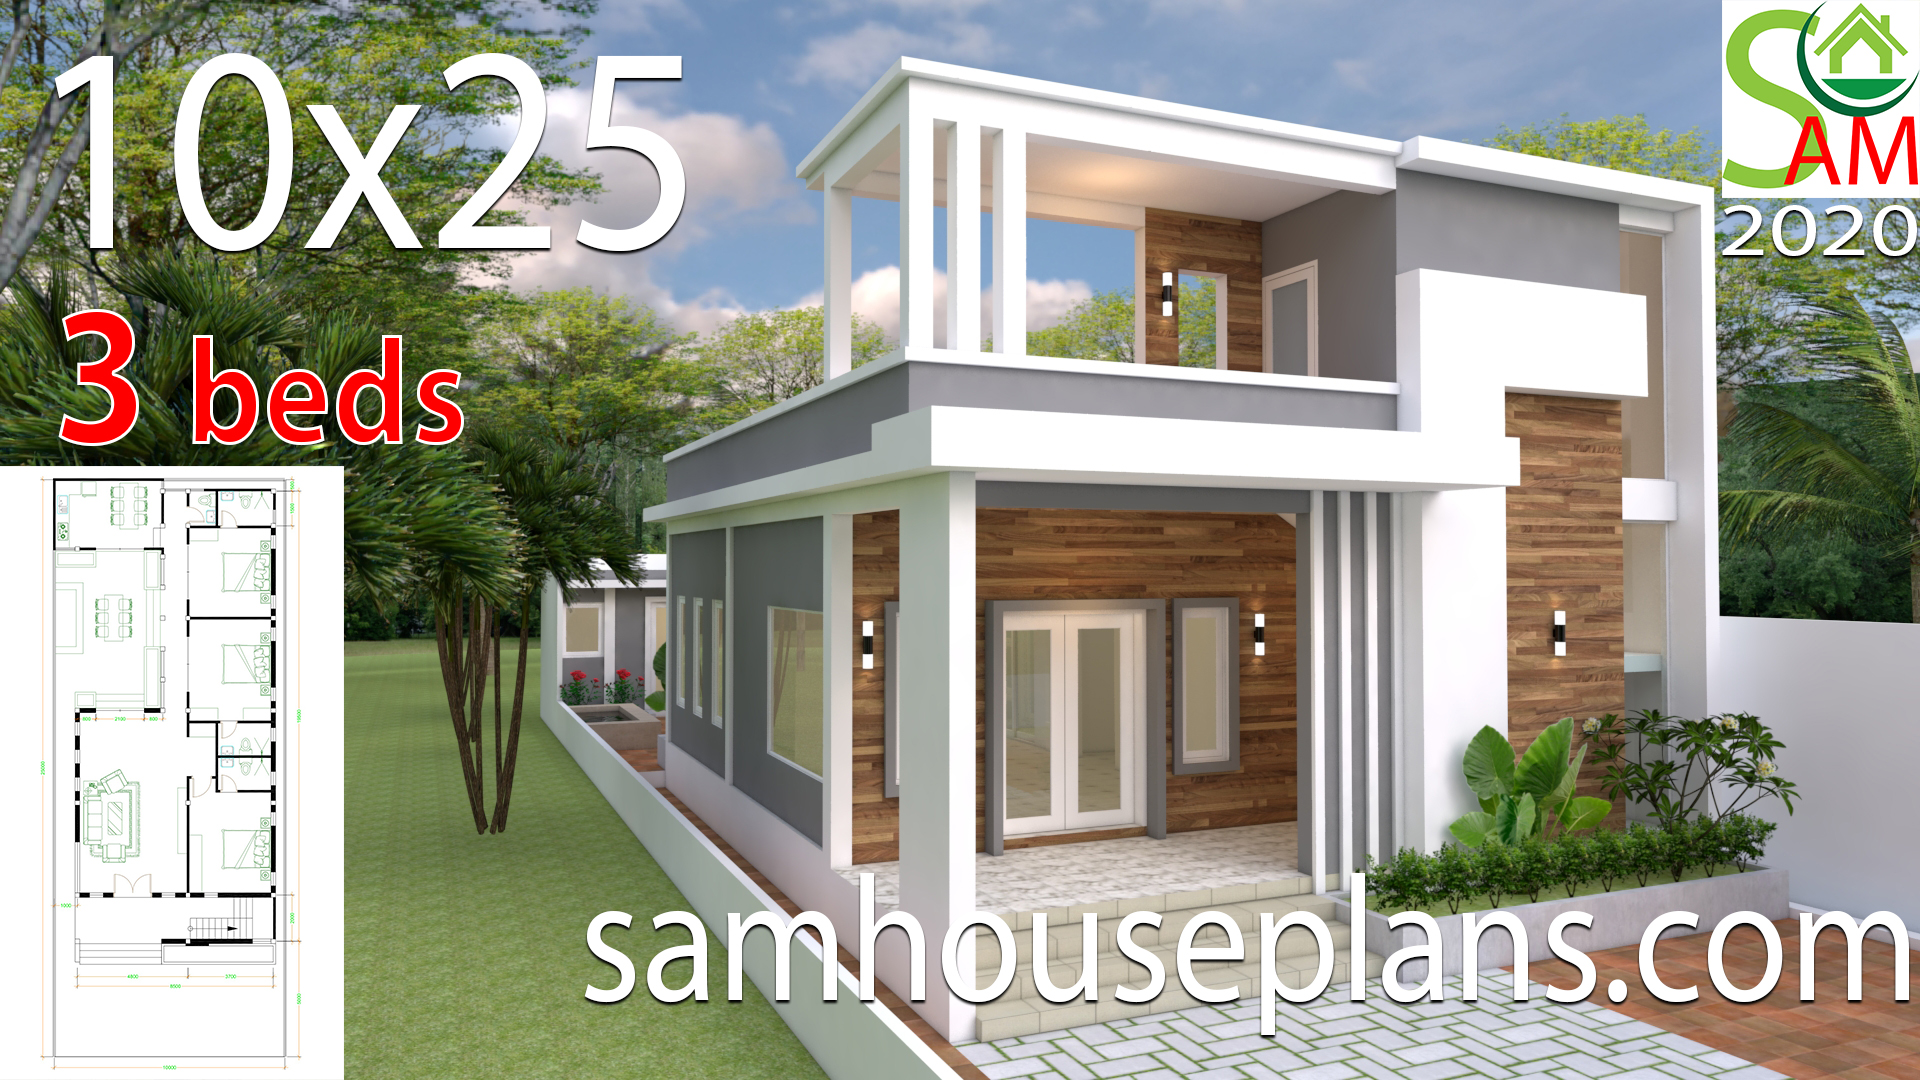 House Design Plans 10x25 with 3 bedrooms - Sam House Plans